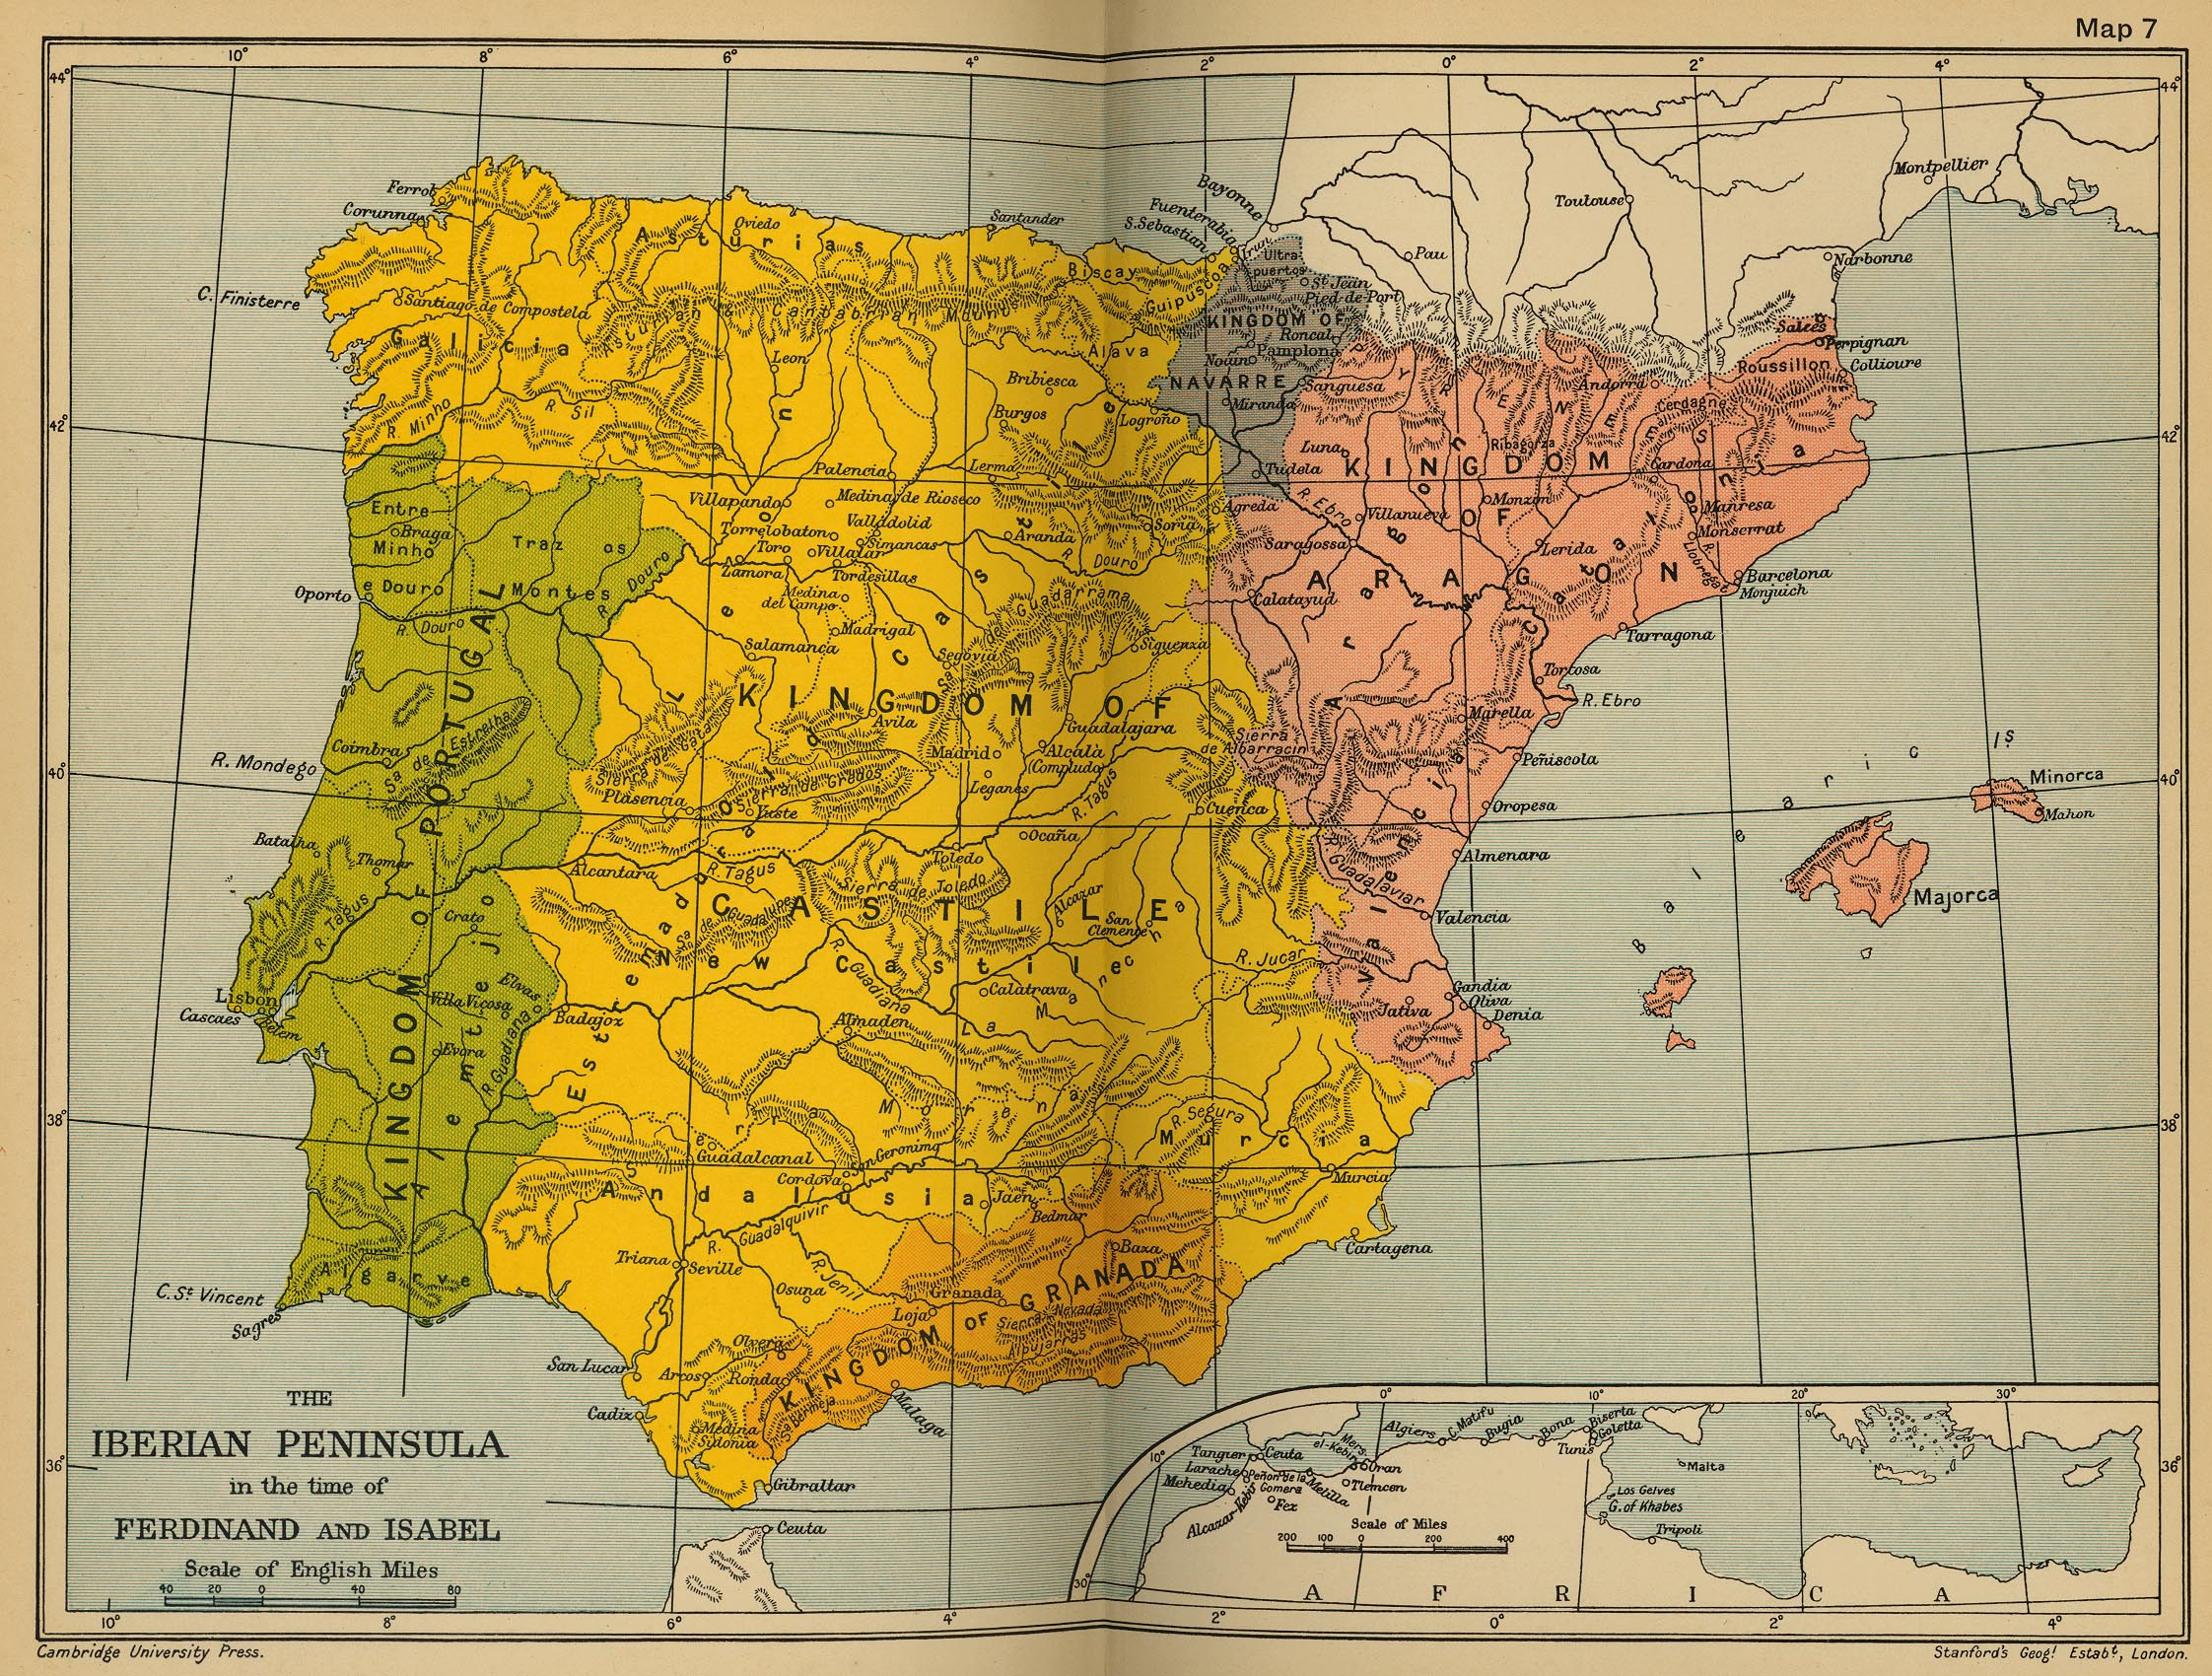 Map of the Iberian Peninsula in the time of Ferdinand and Isabel, 1479-1504